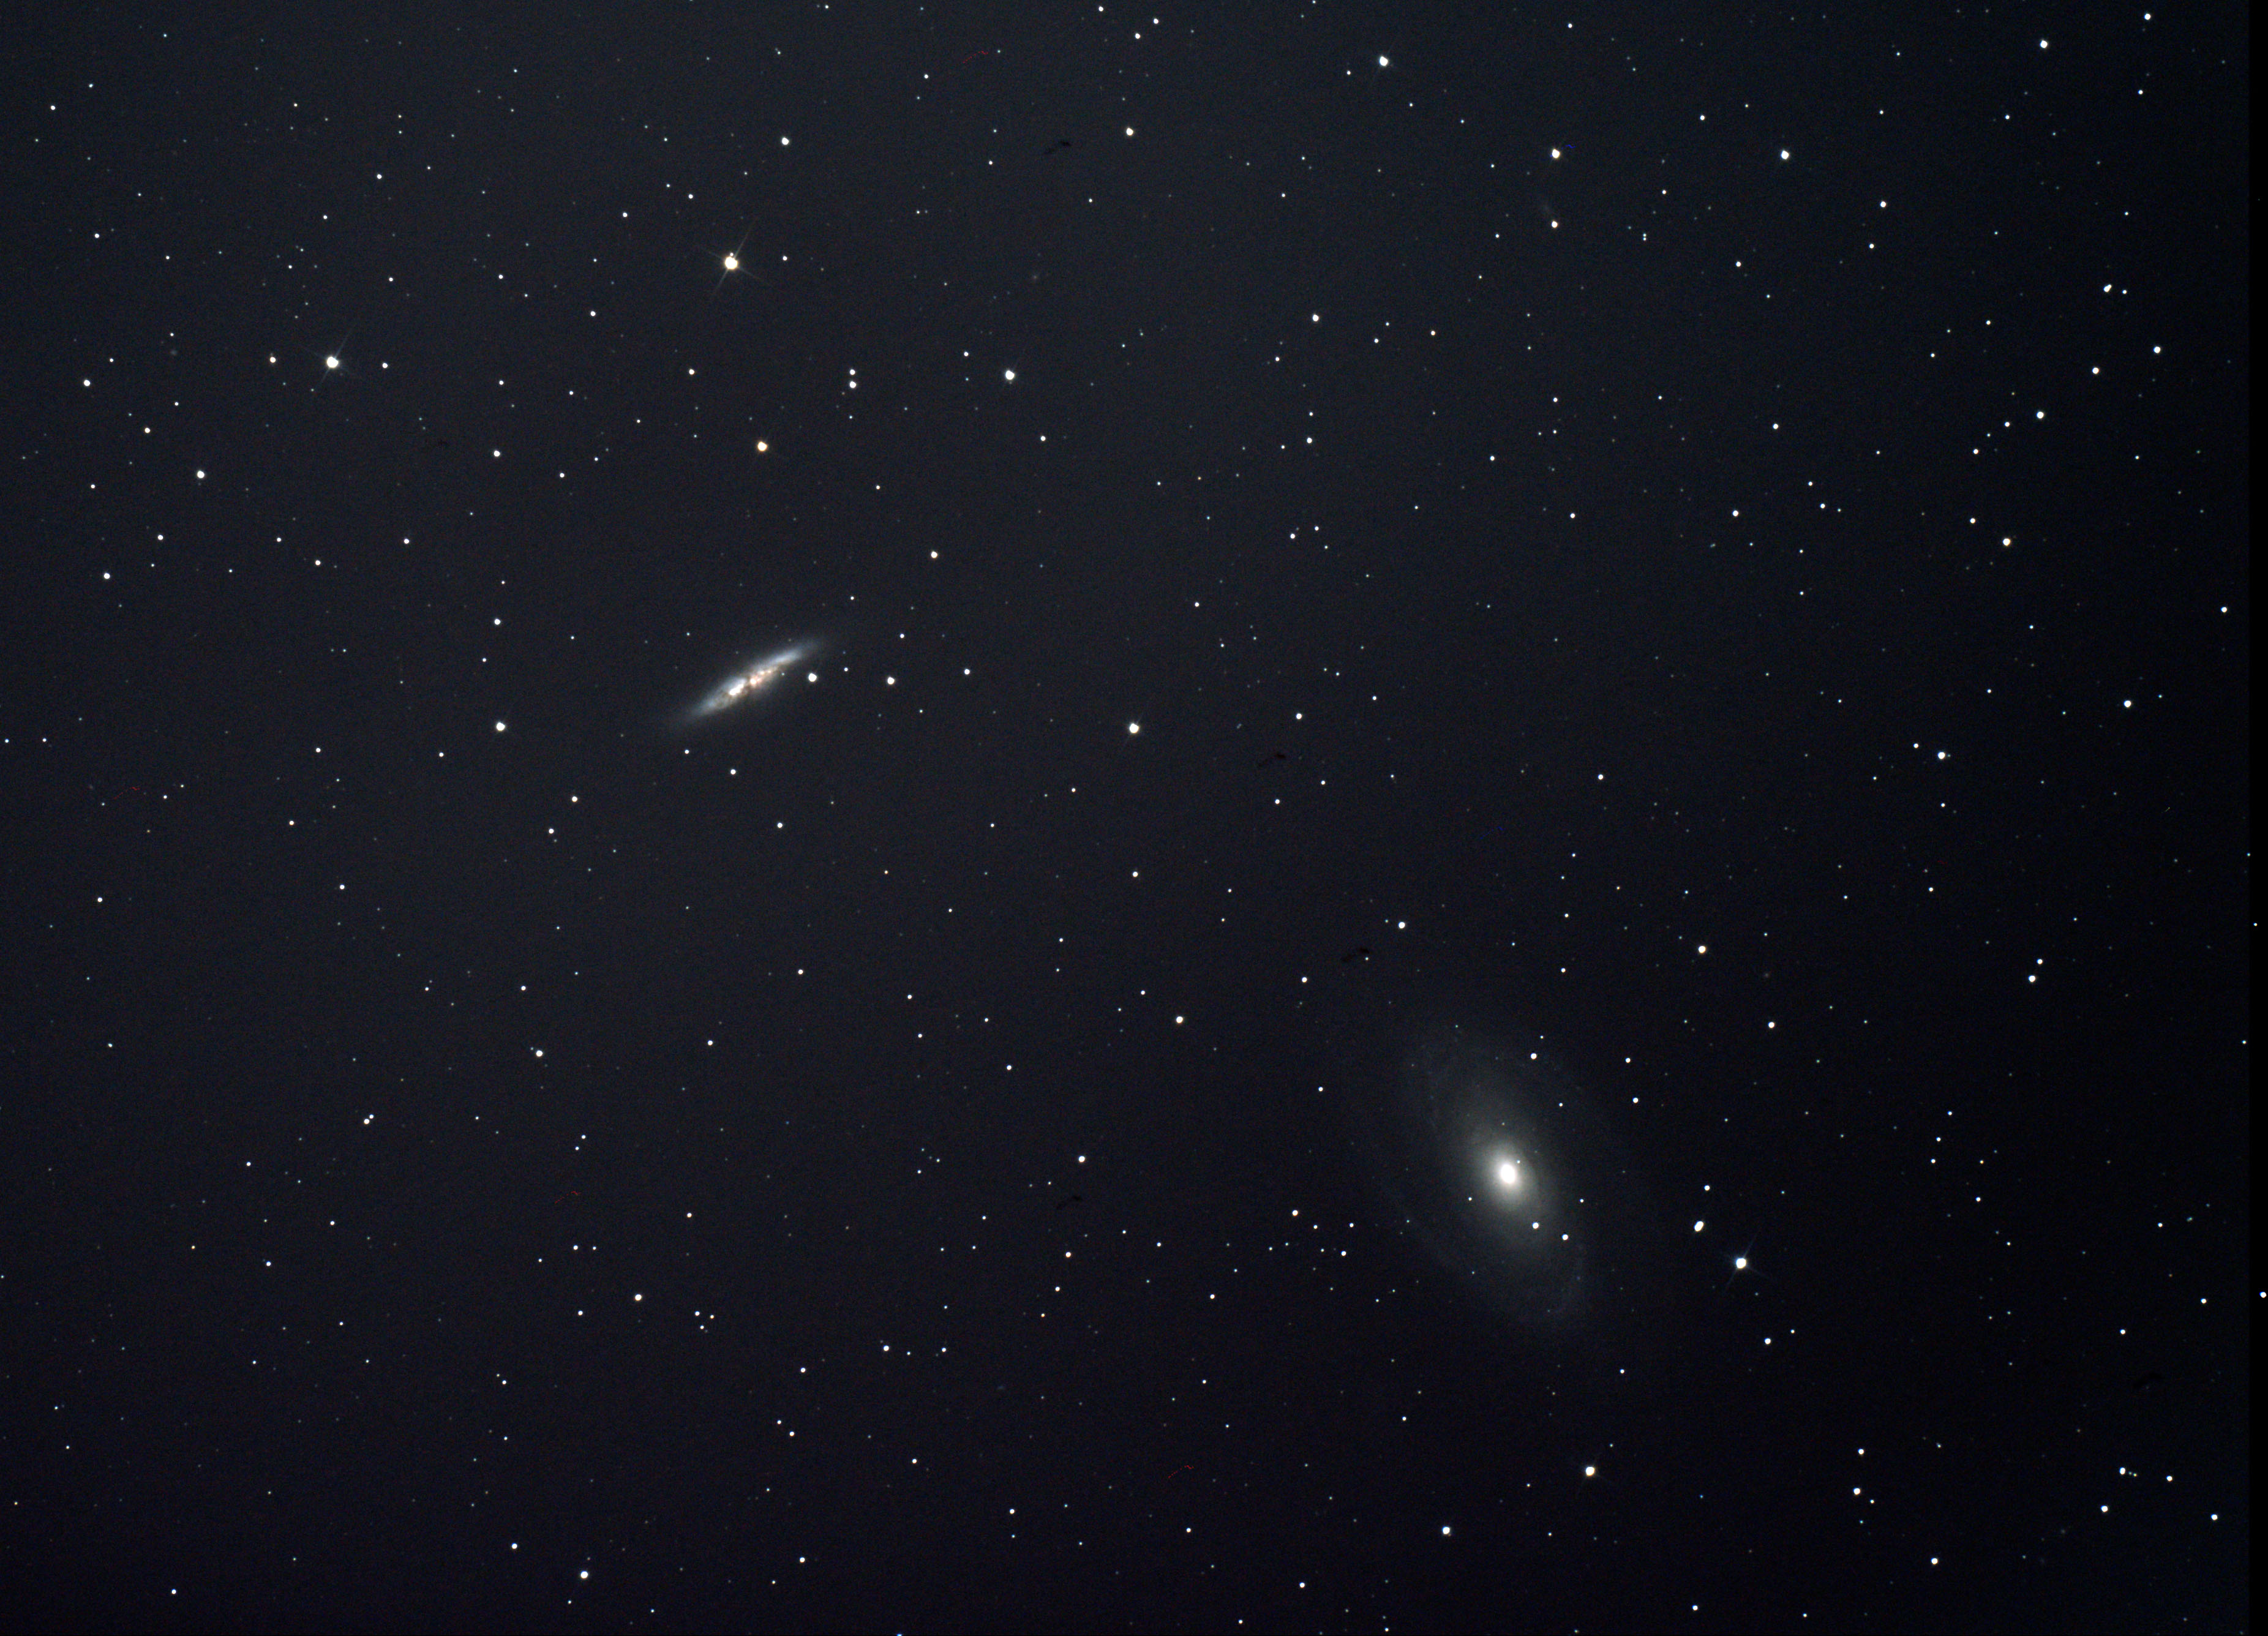 M81 & M 82 by Ken Kennedy Ken has added a close-up of this image featuring M82 and is shown later.